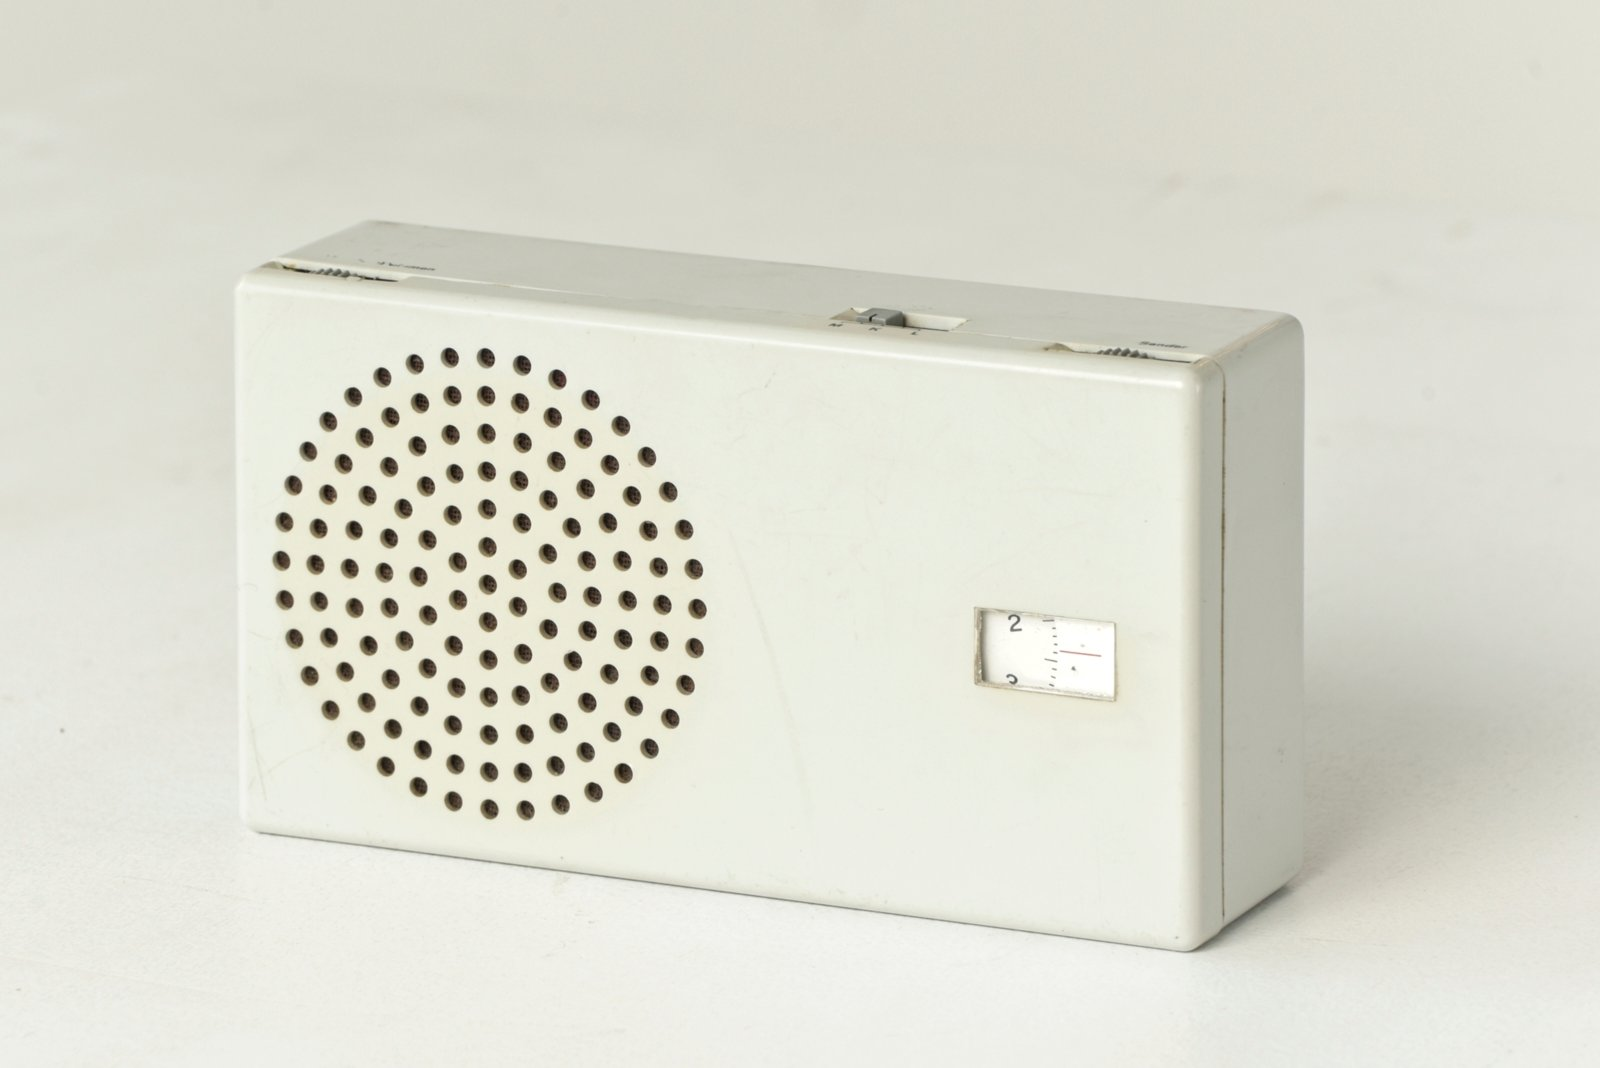 Pocket Radio T4 By Dieter Rams For Braun Germany 1959 For Sale At Pamono